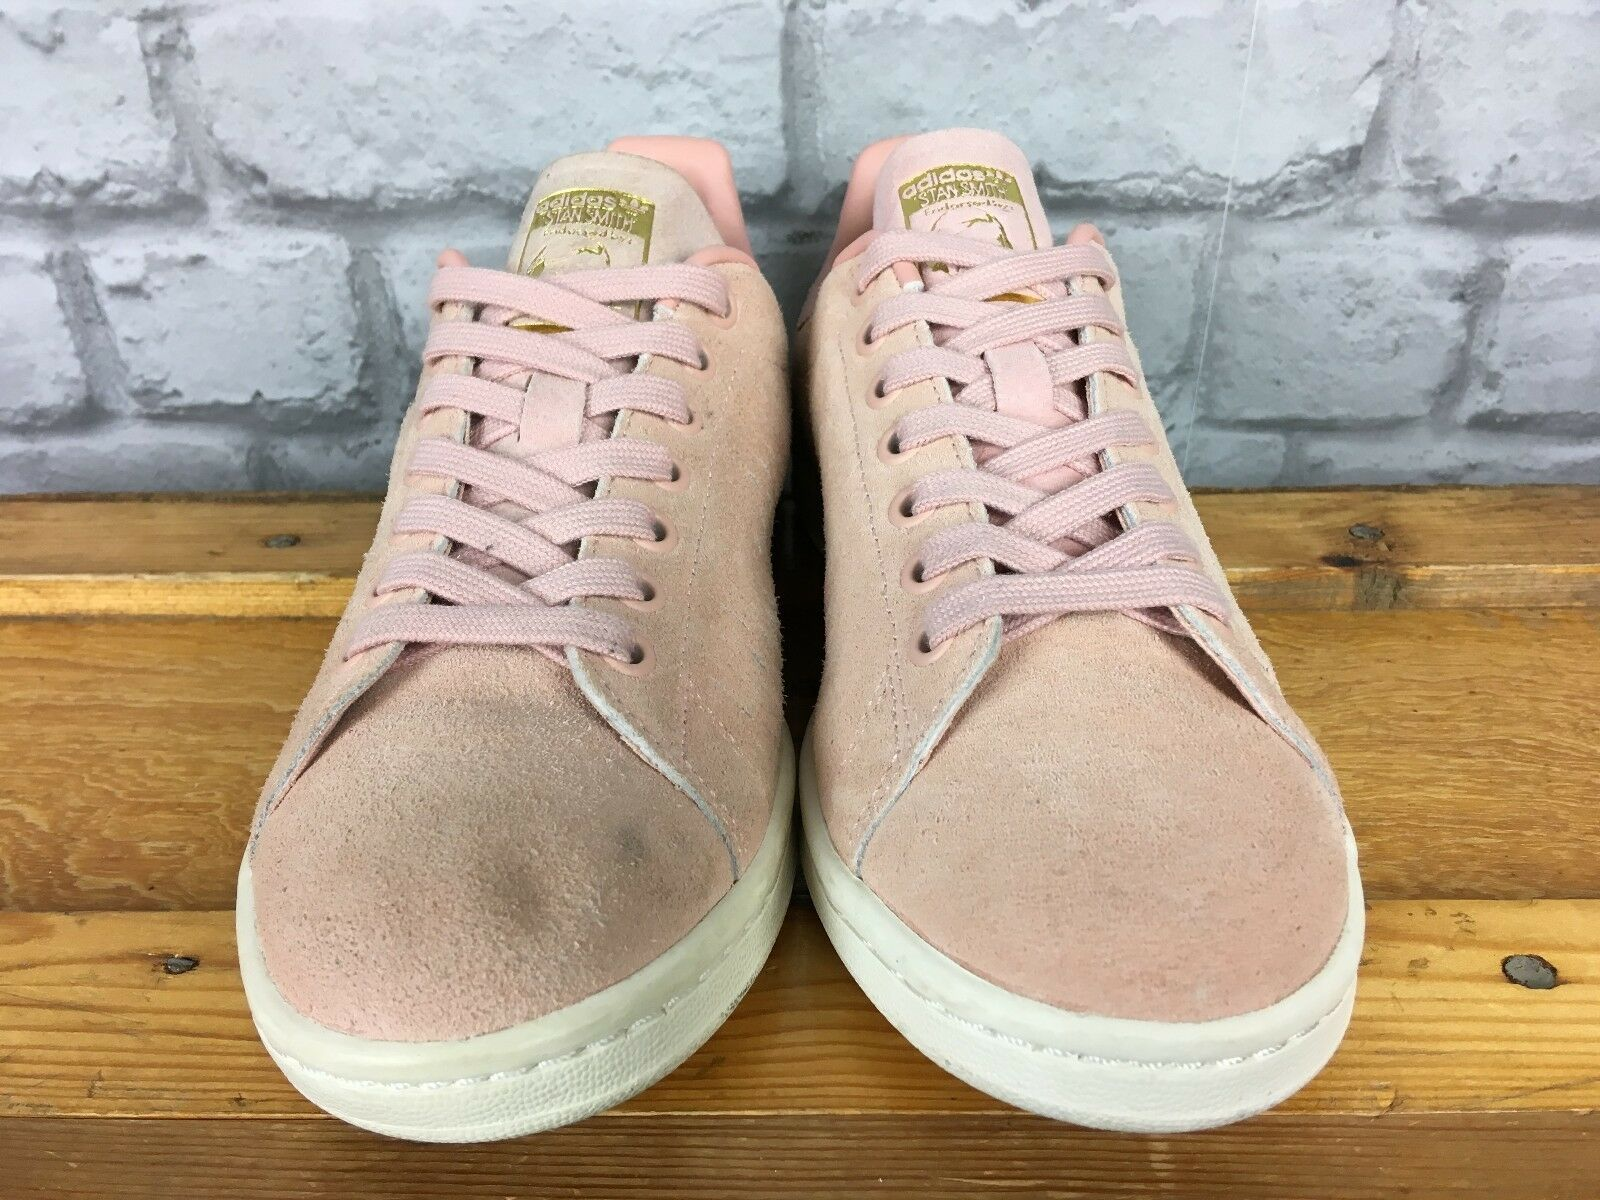 ADIDAS LADIES UK 6 EU 39 1/3 PINK SUEDE FOIL STAN SMITH TRAINERS GOLD FOIL SUEDE BRANDING b586db